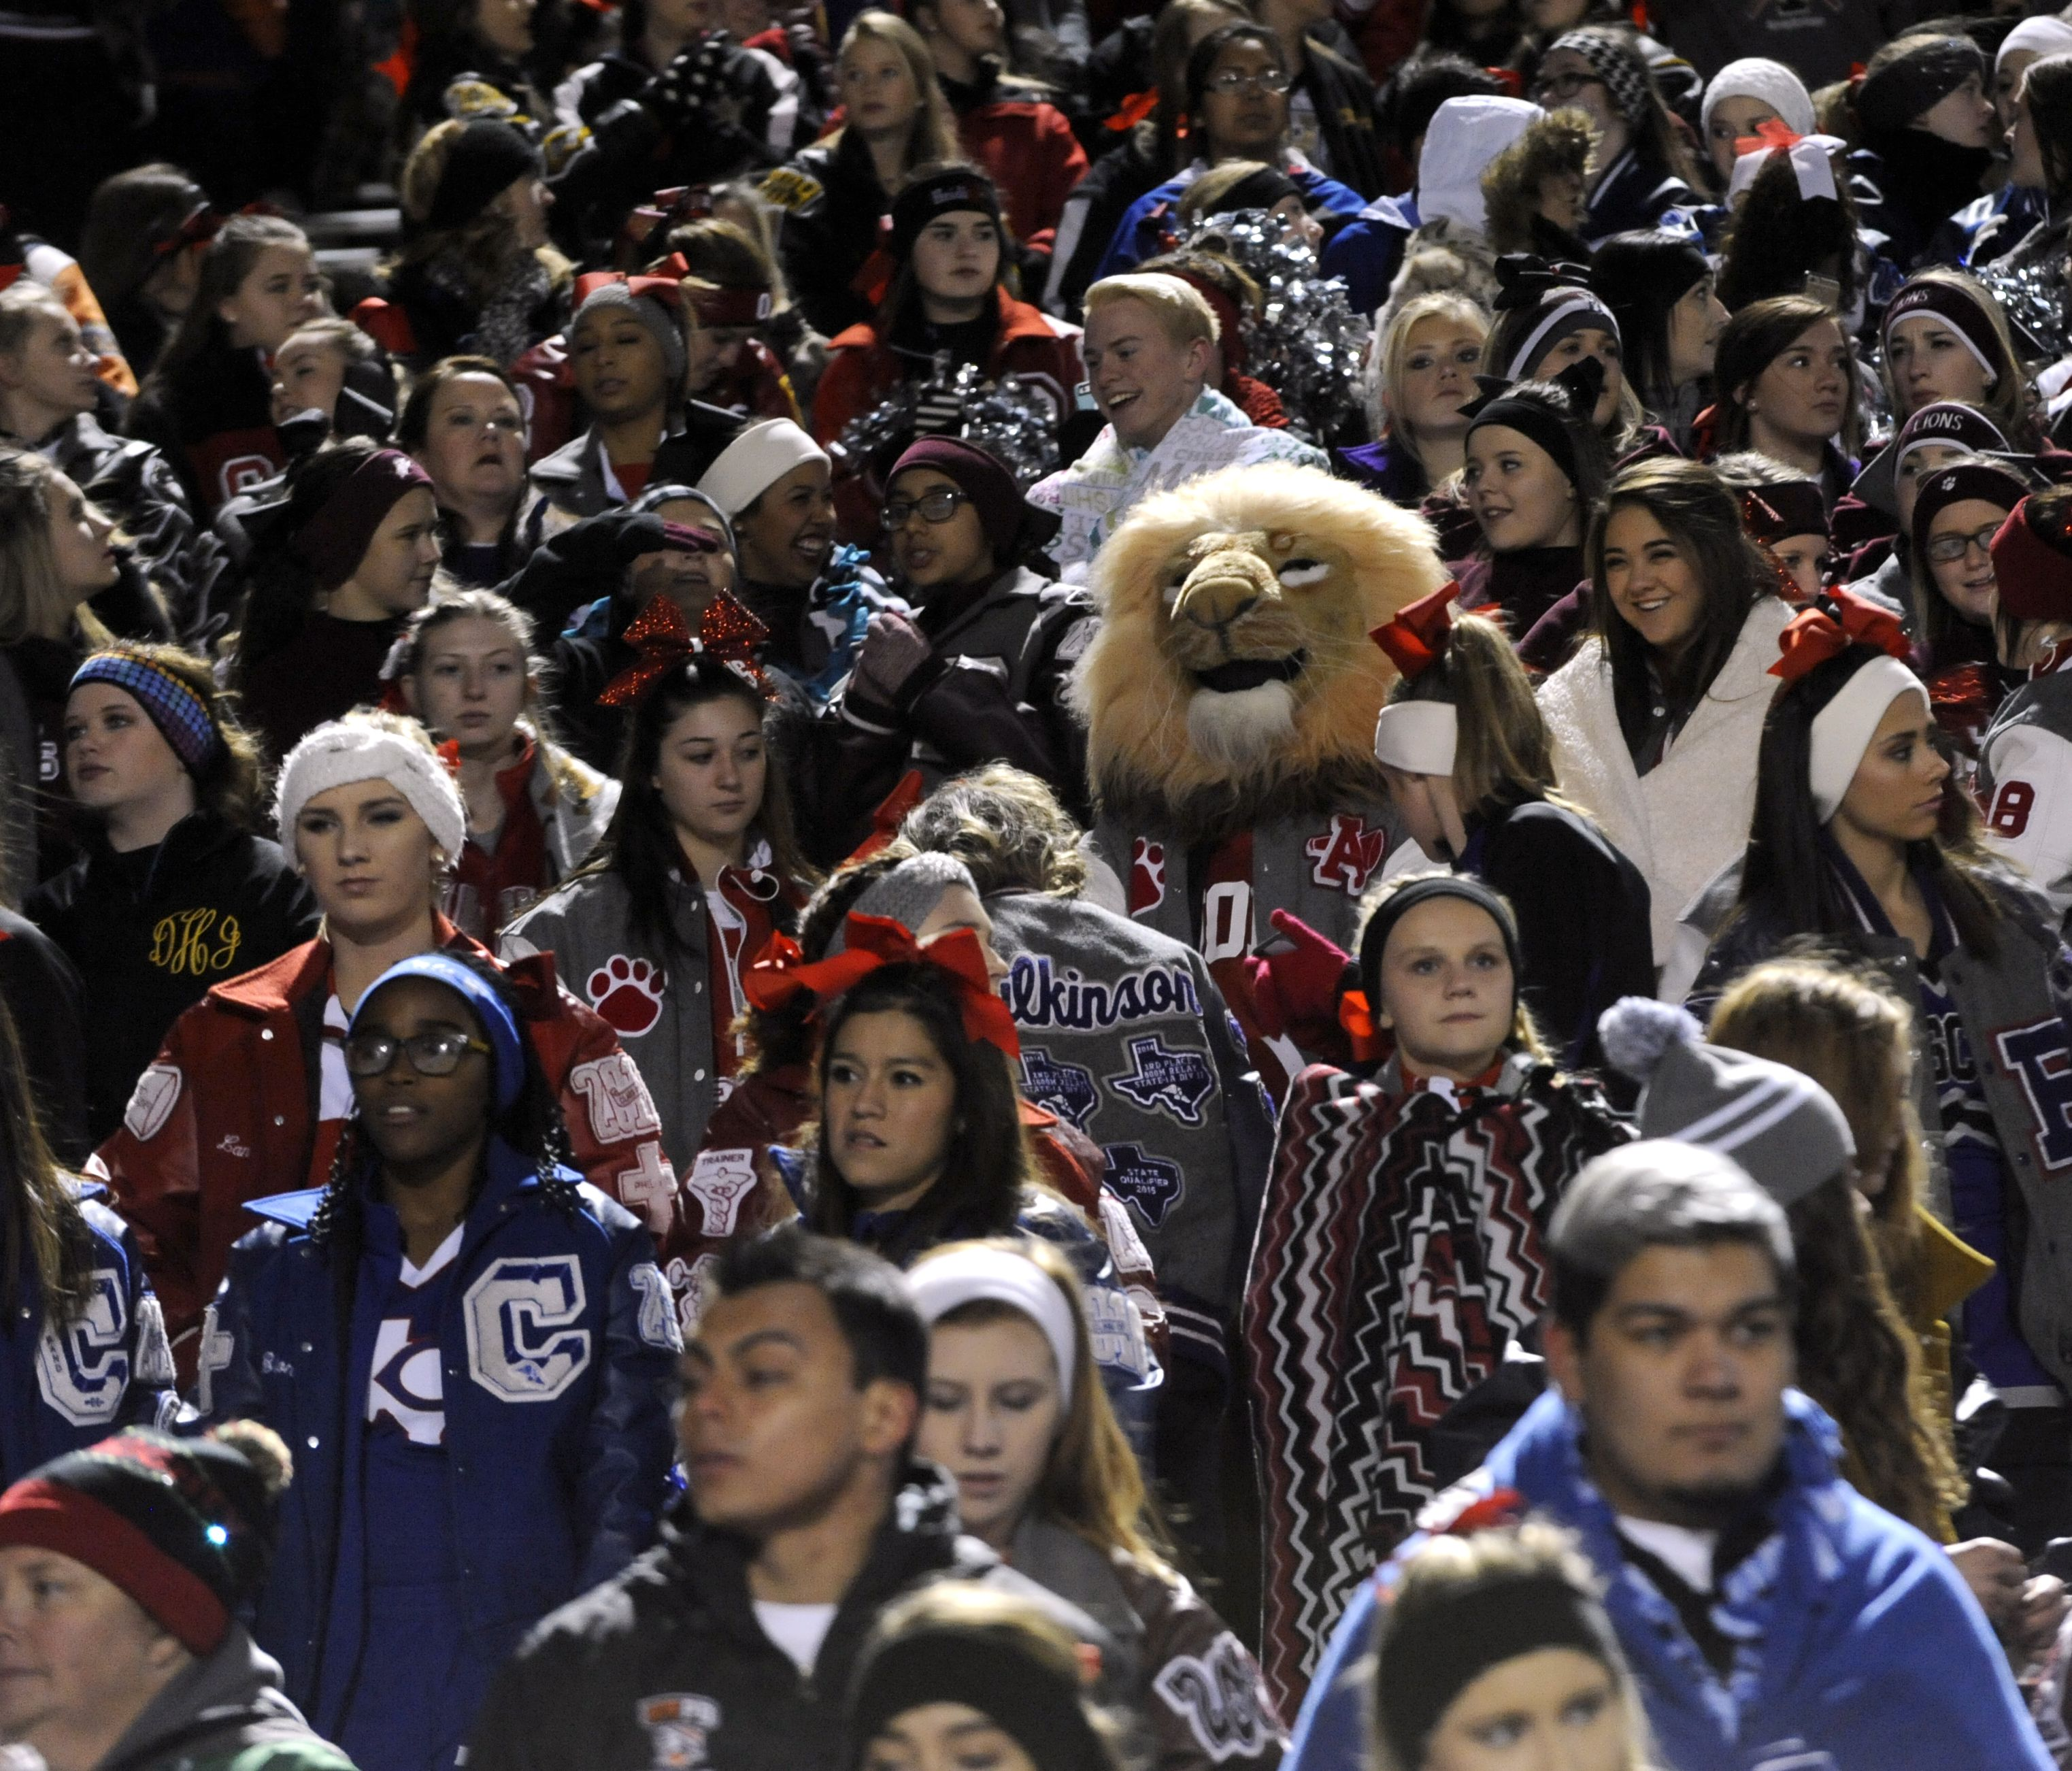 West Texas cheerleaders and their mascots packed Shotwell Stadium in Abilene Friday night to cheer on the Iraan Braves. (Photo: Ronald W. Erdrich, Abilene Reporter News)